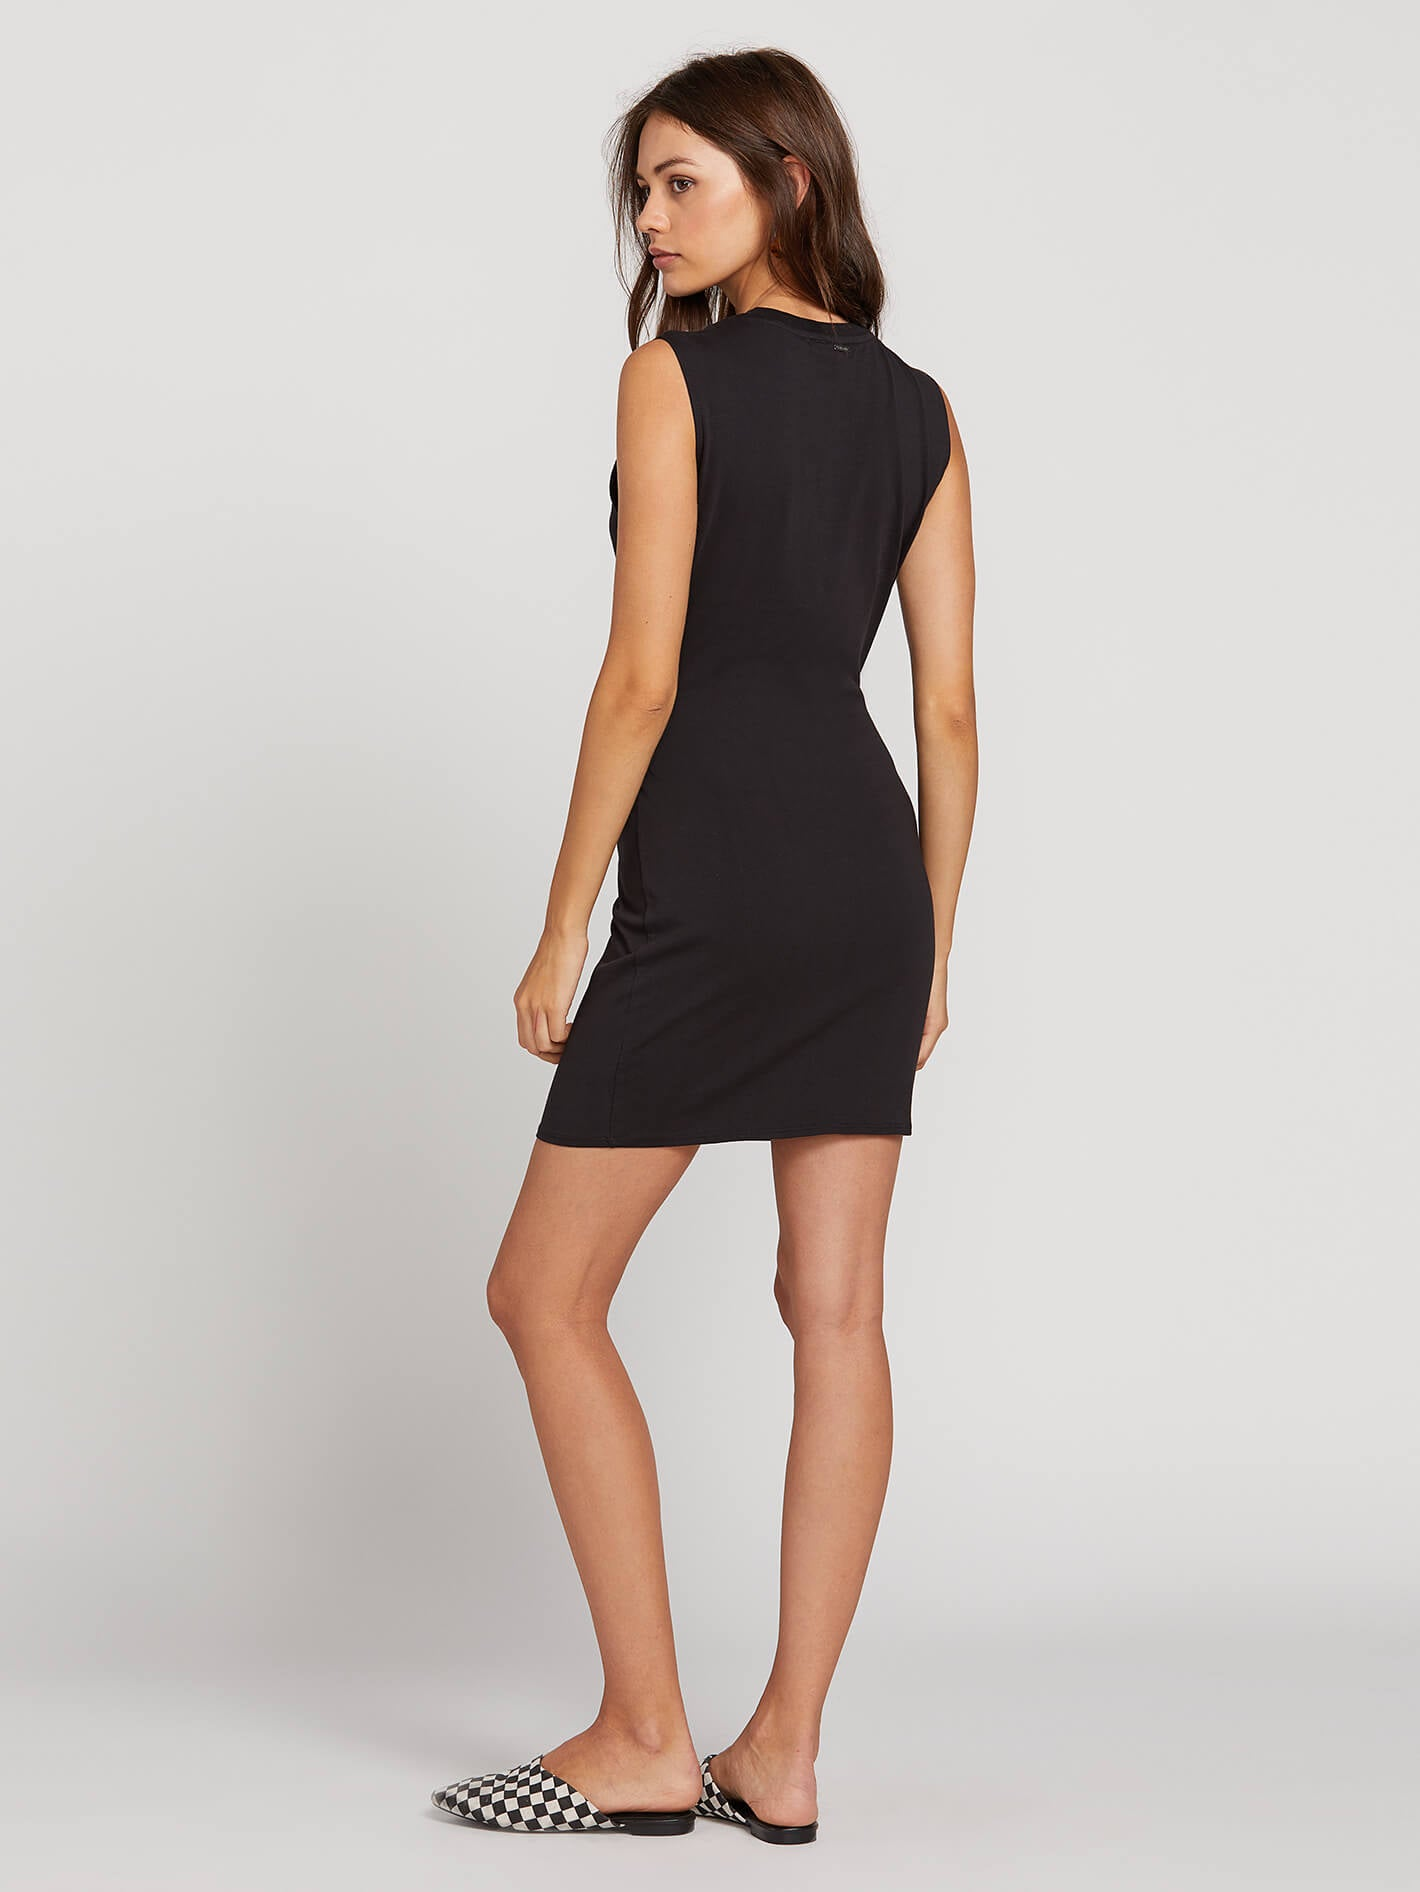 a45ce2ba6b21 Womens Casual Dresses and Skirts - Womens Clothing | Volcom